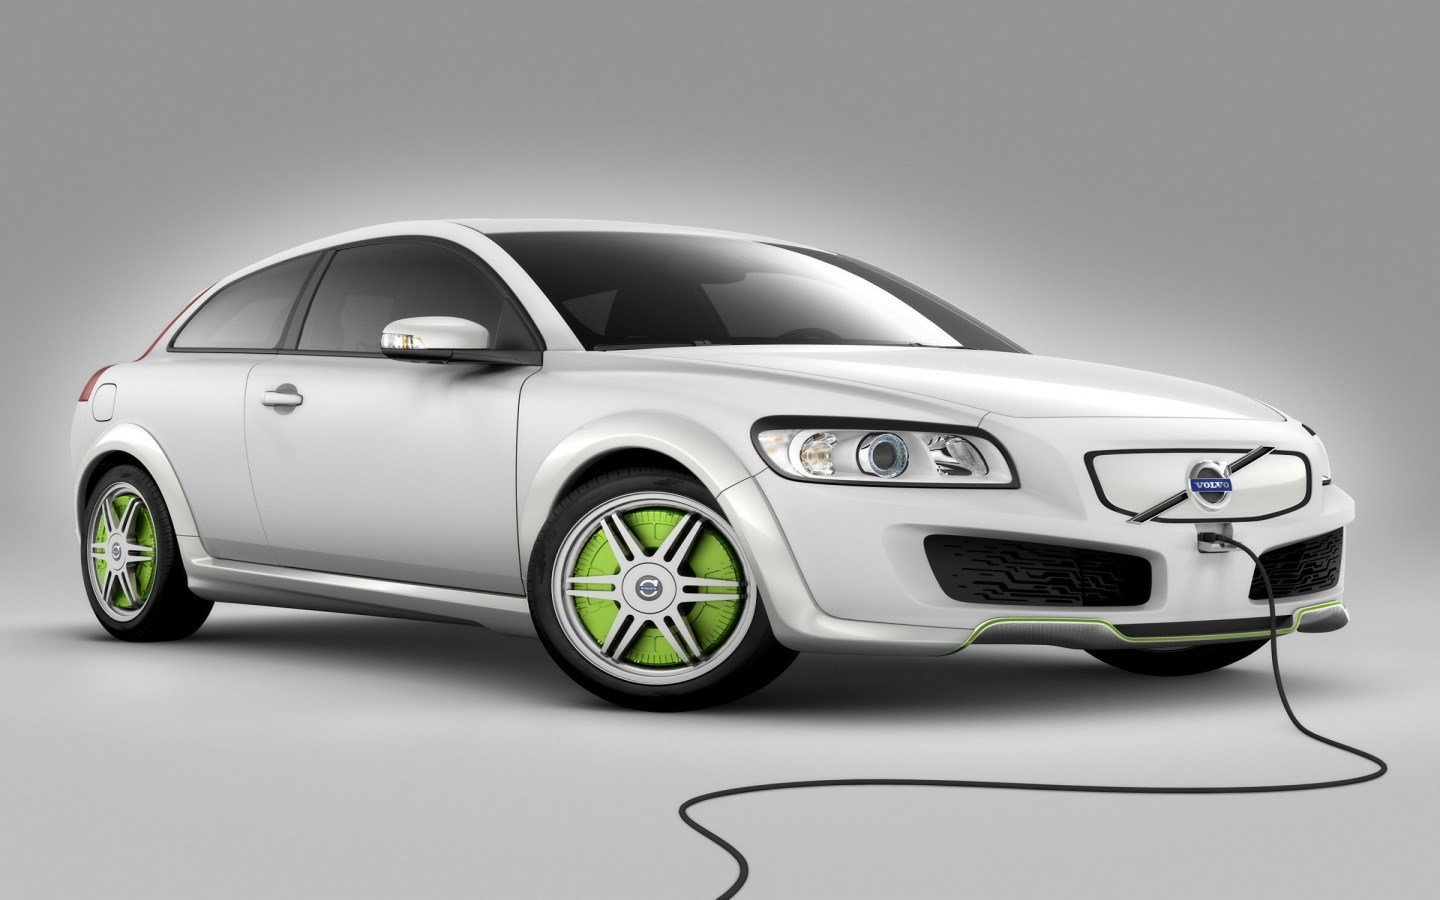 New Volvo Recharge Concept 2007 Wallpaper Volvo Cars On This Month